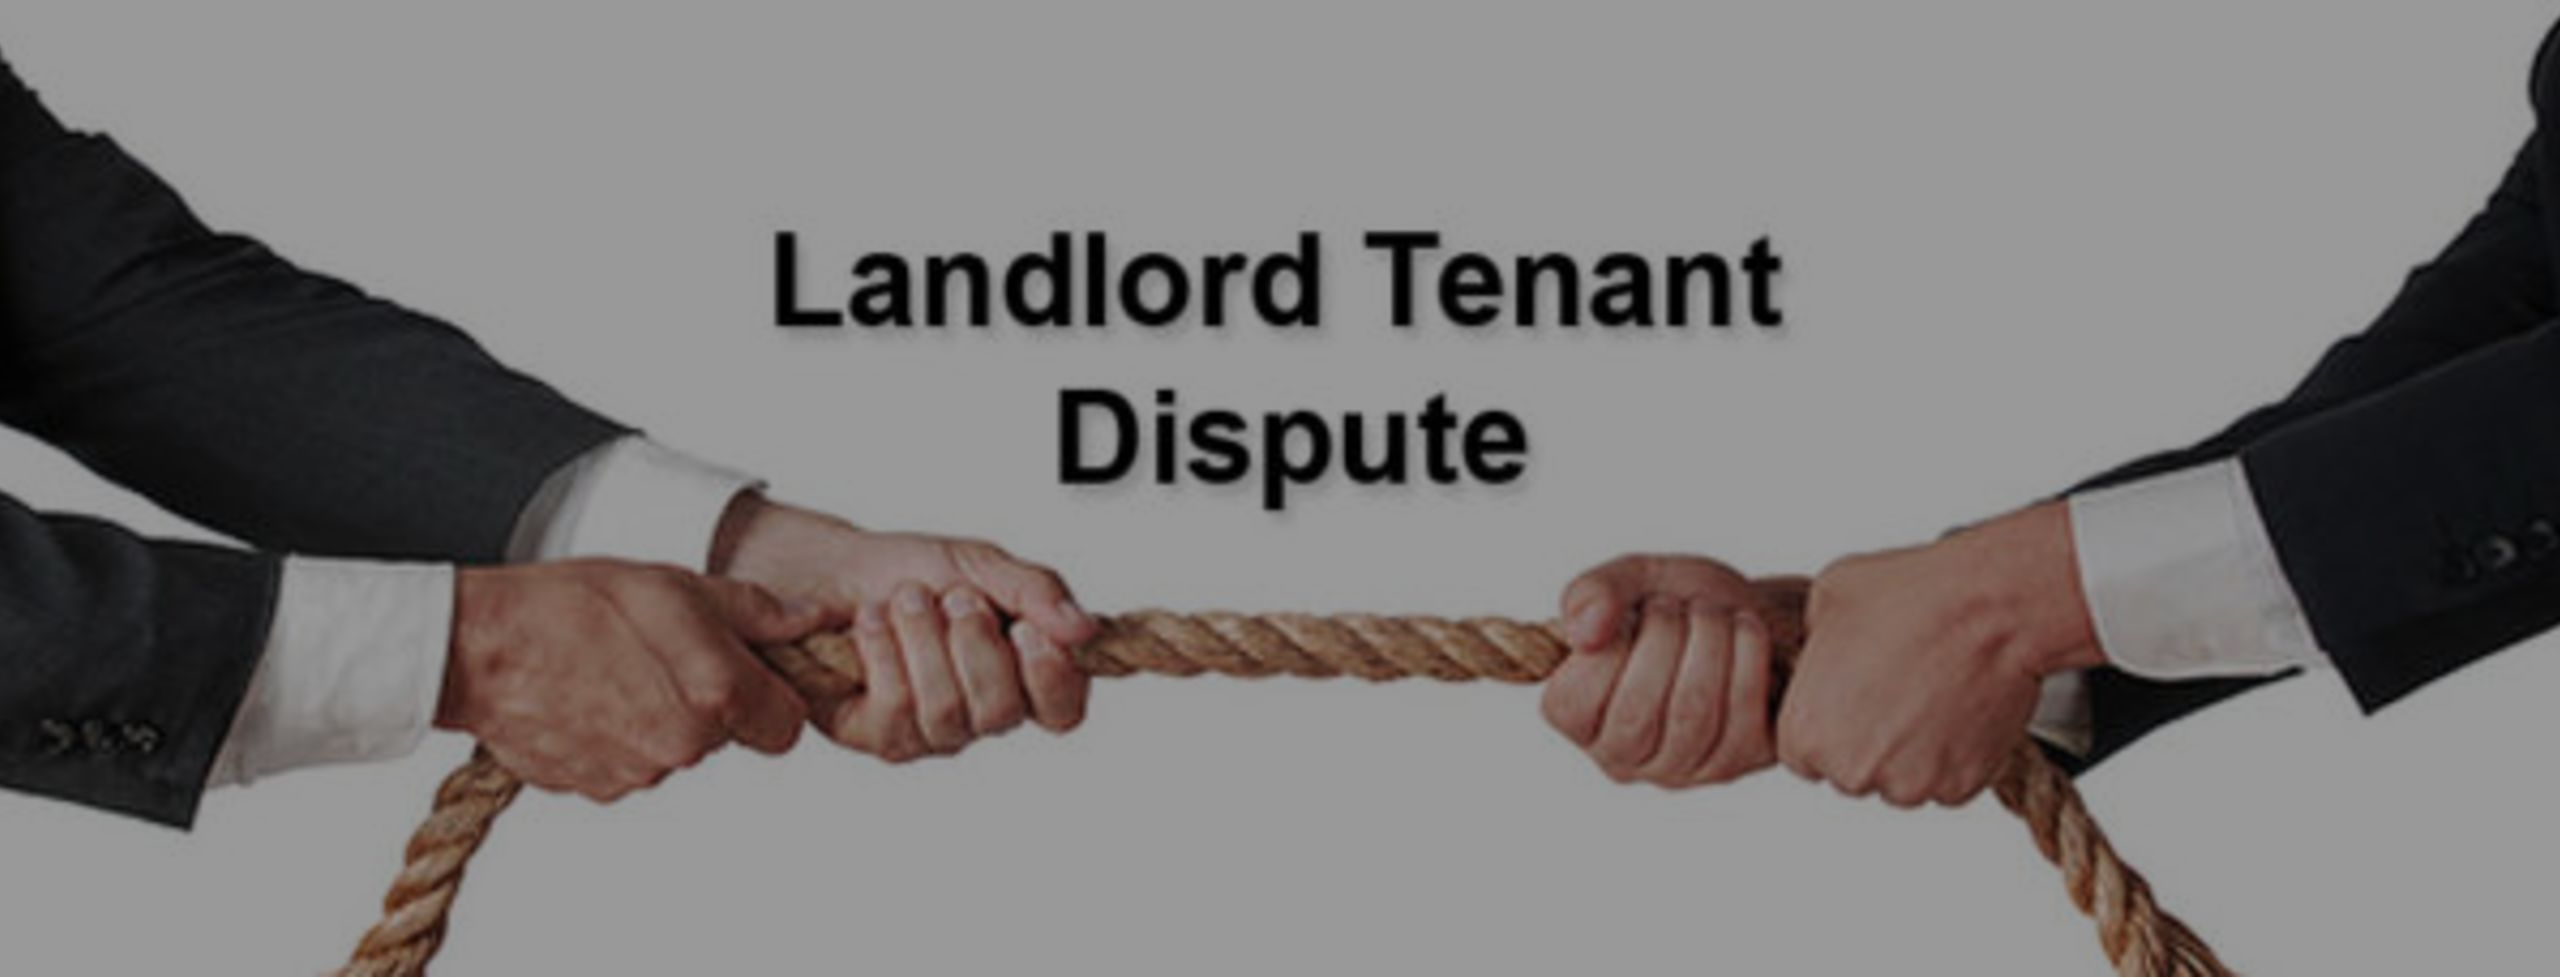 How to Manage Tenant Conflict in Miami